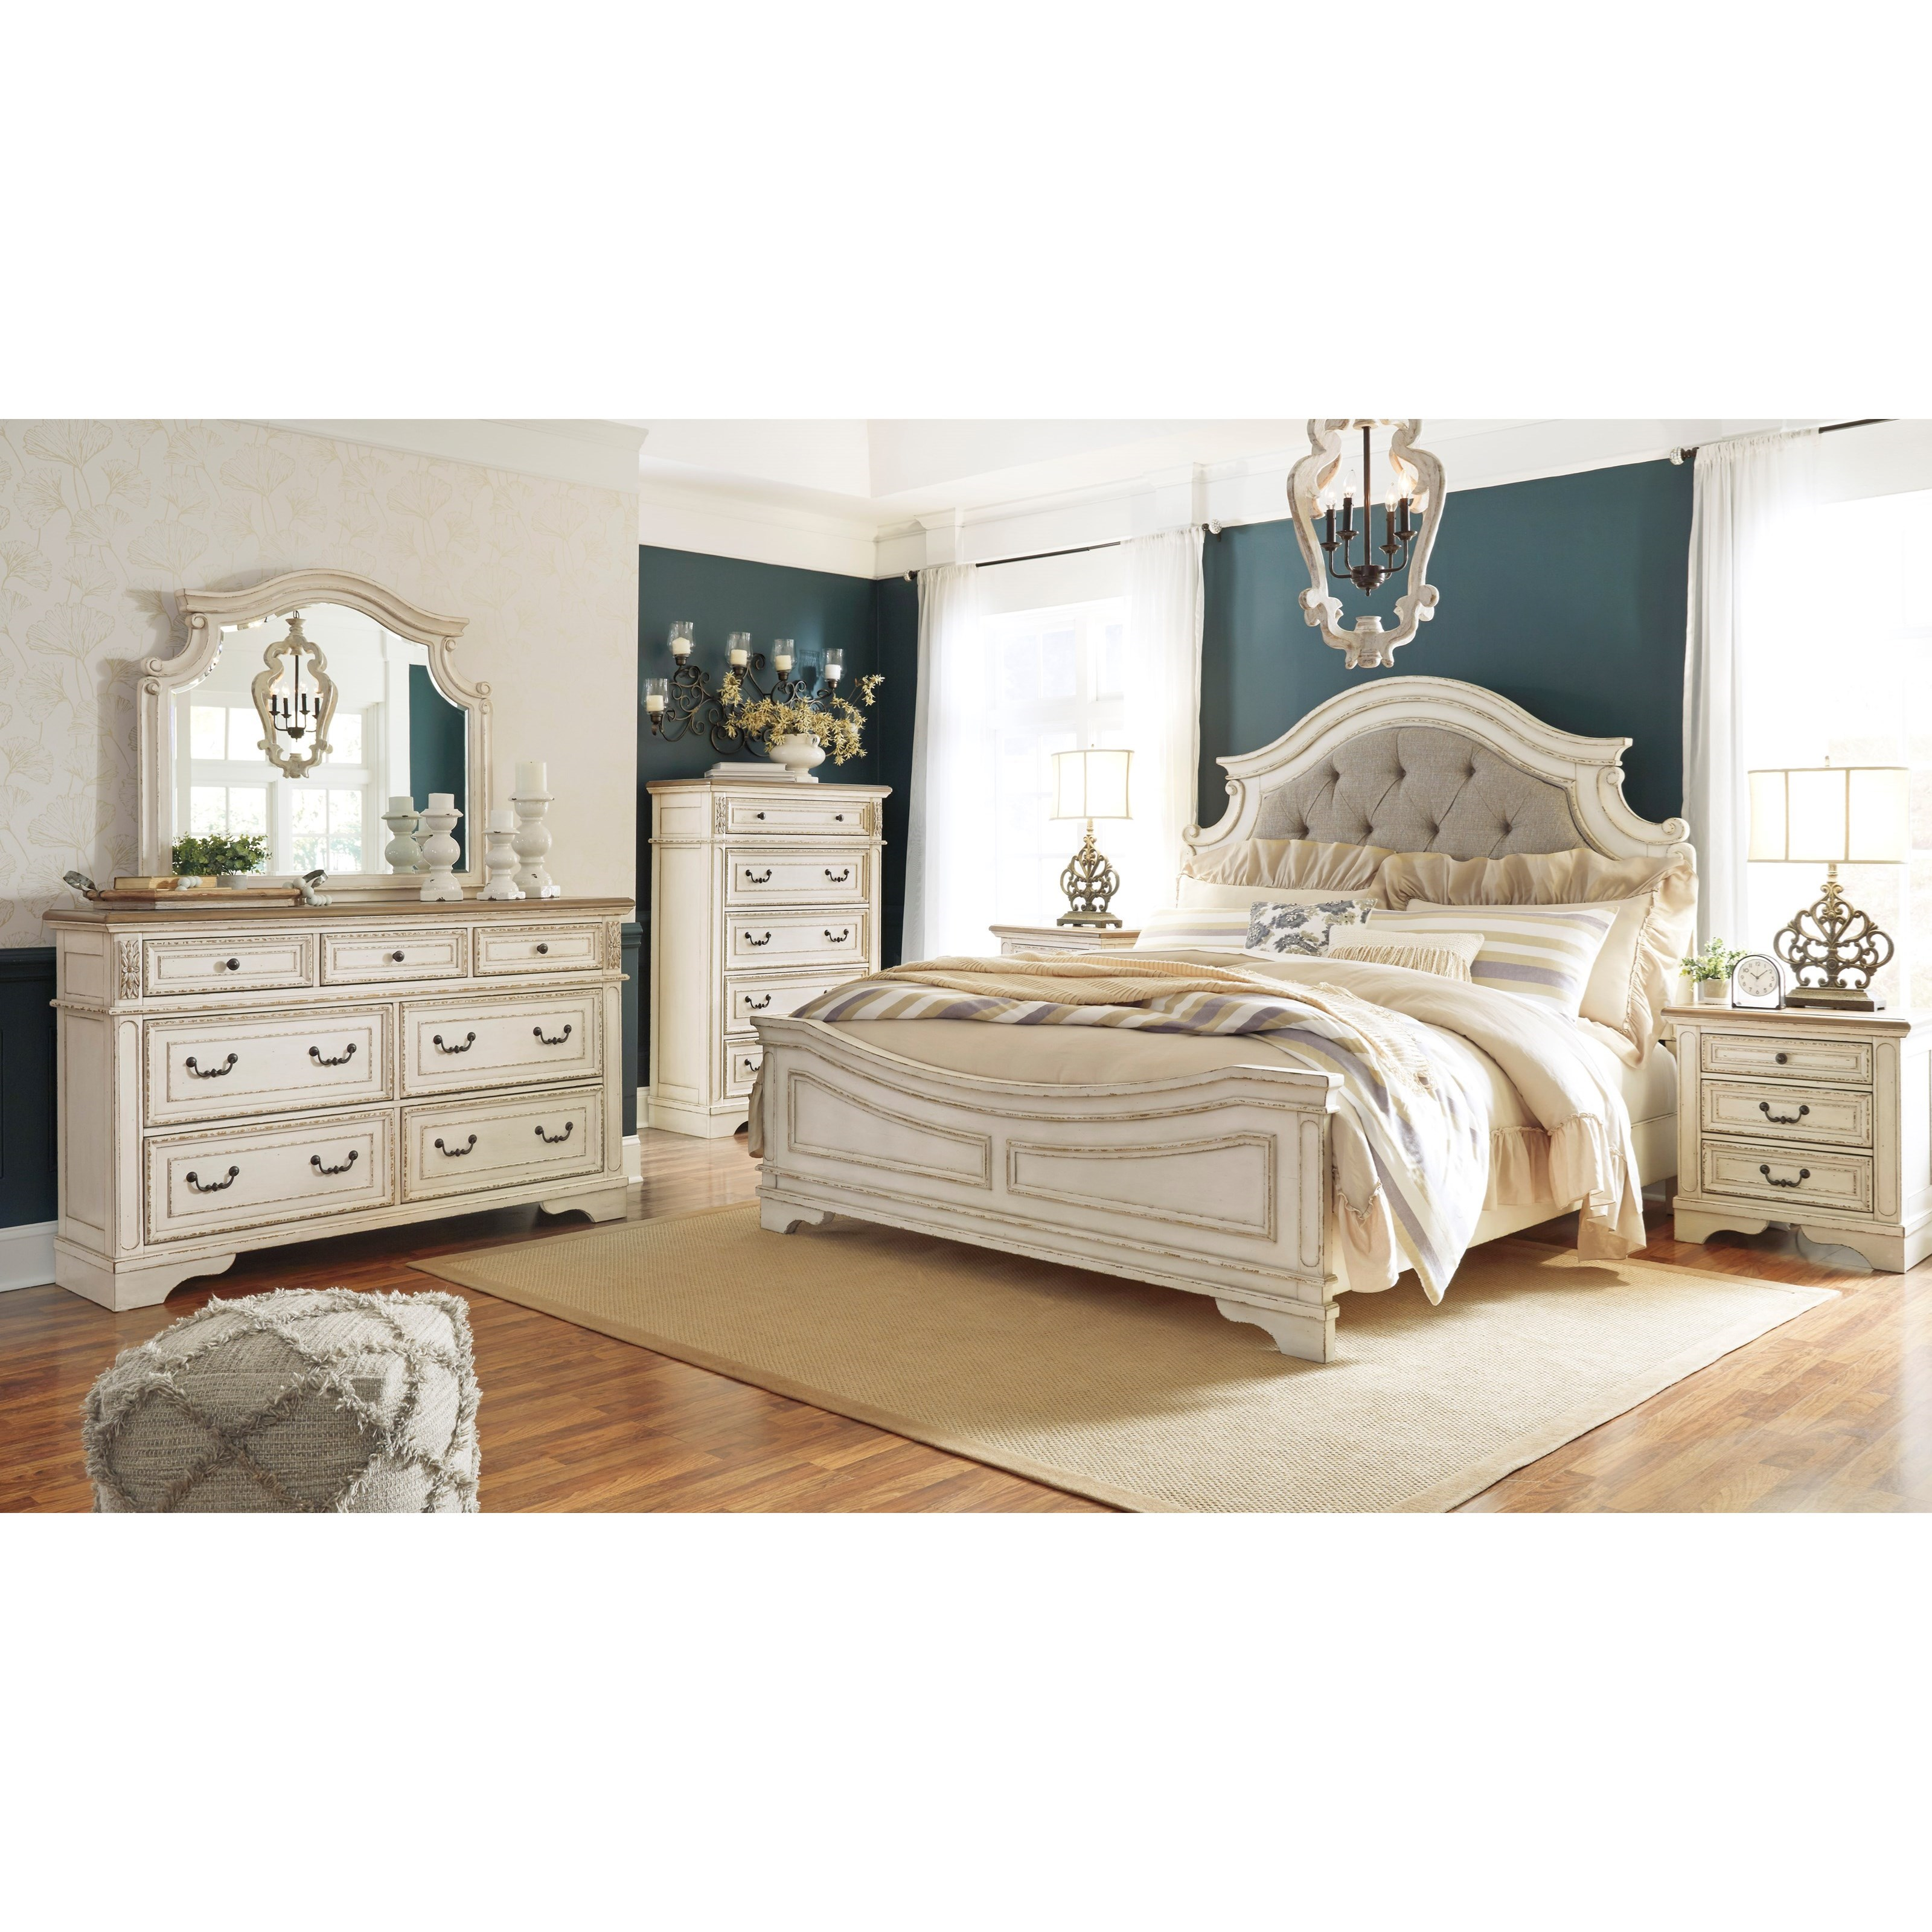 Ashley Home Furniture Bedroom Sets: Ashley Signature Design Realyn King Bedroom Group